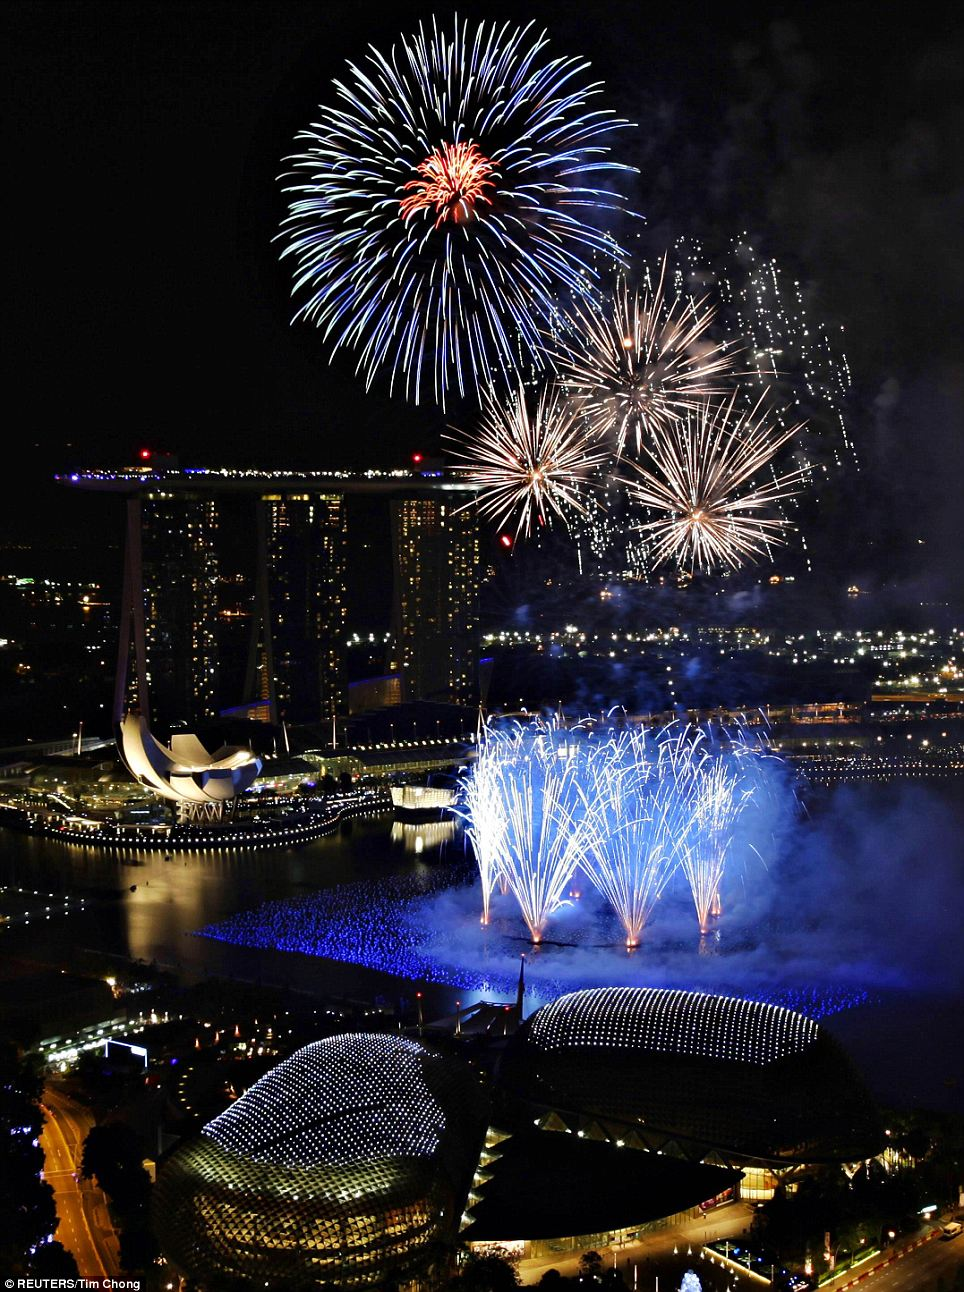 New Year 2012 Fireworks - Singapore Marina Bay